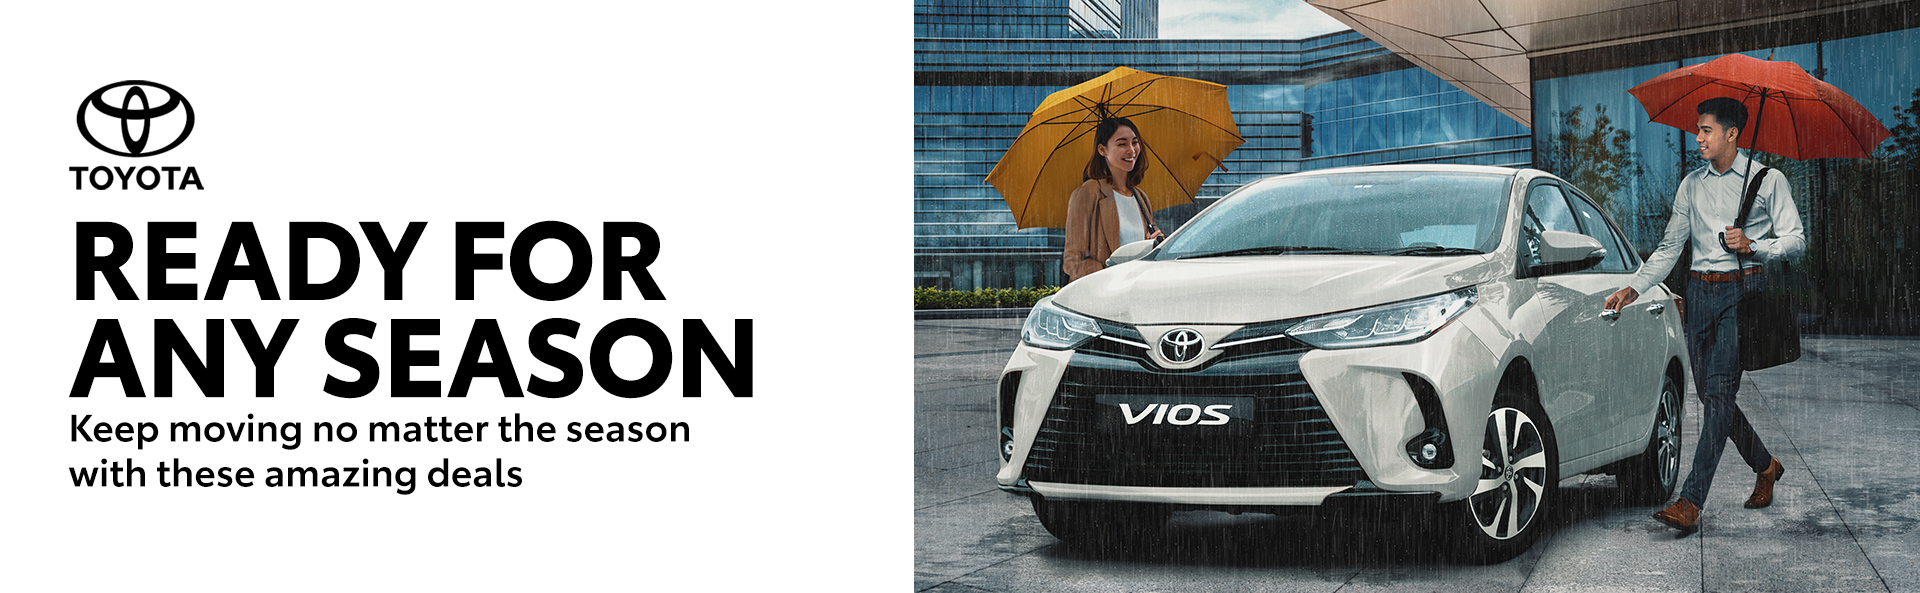 Be ready for any season with Toyota this July